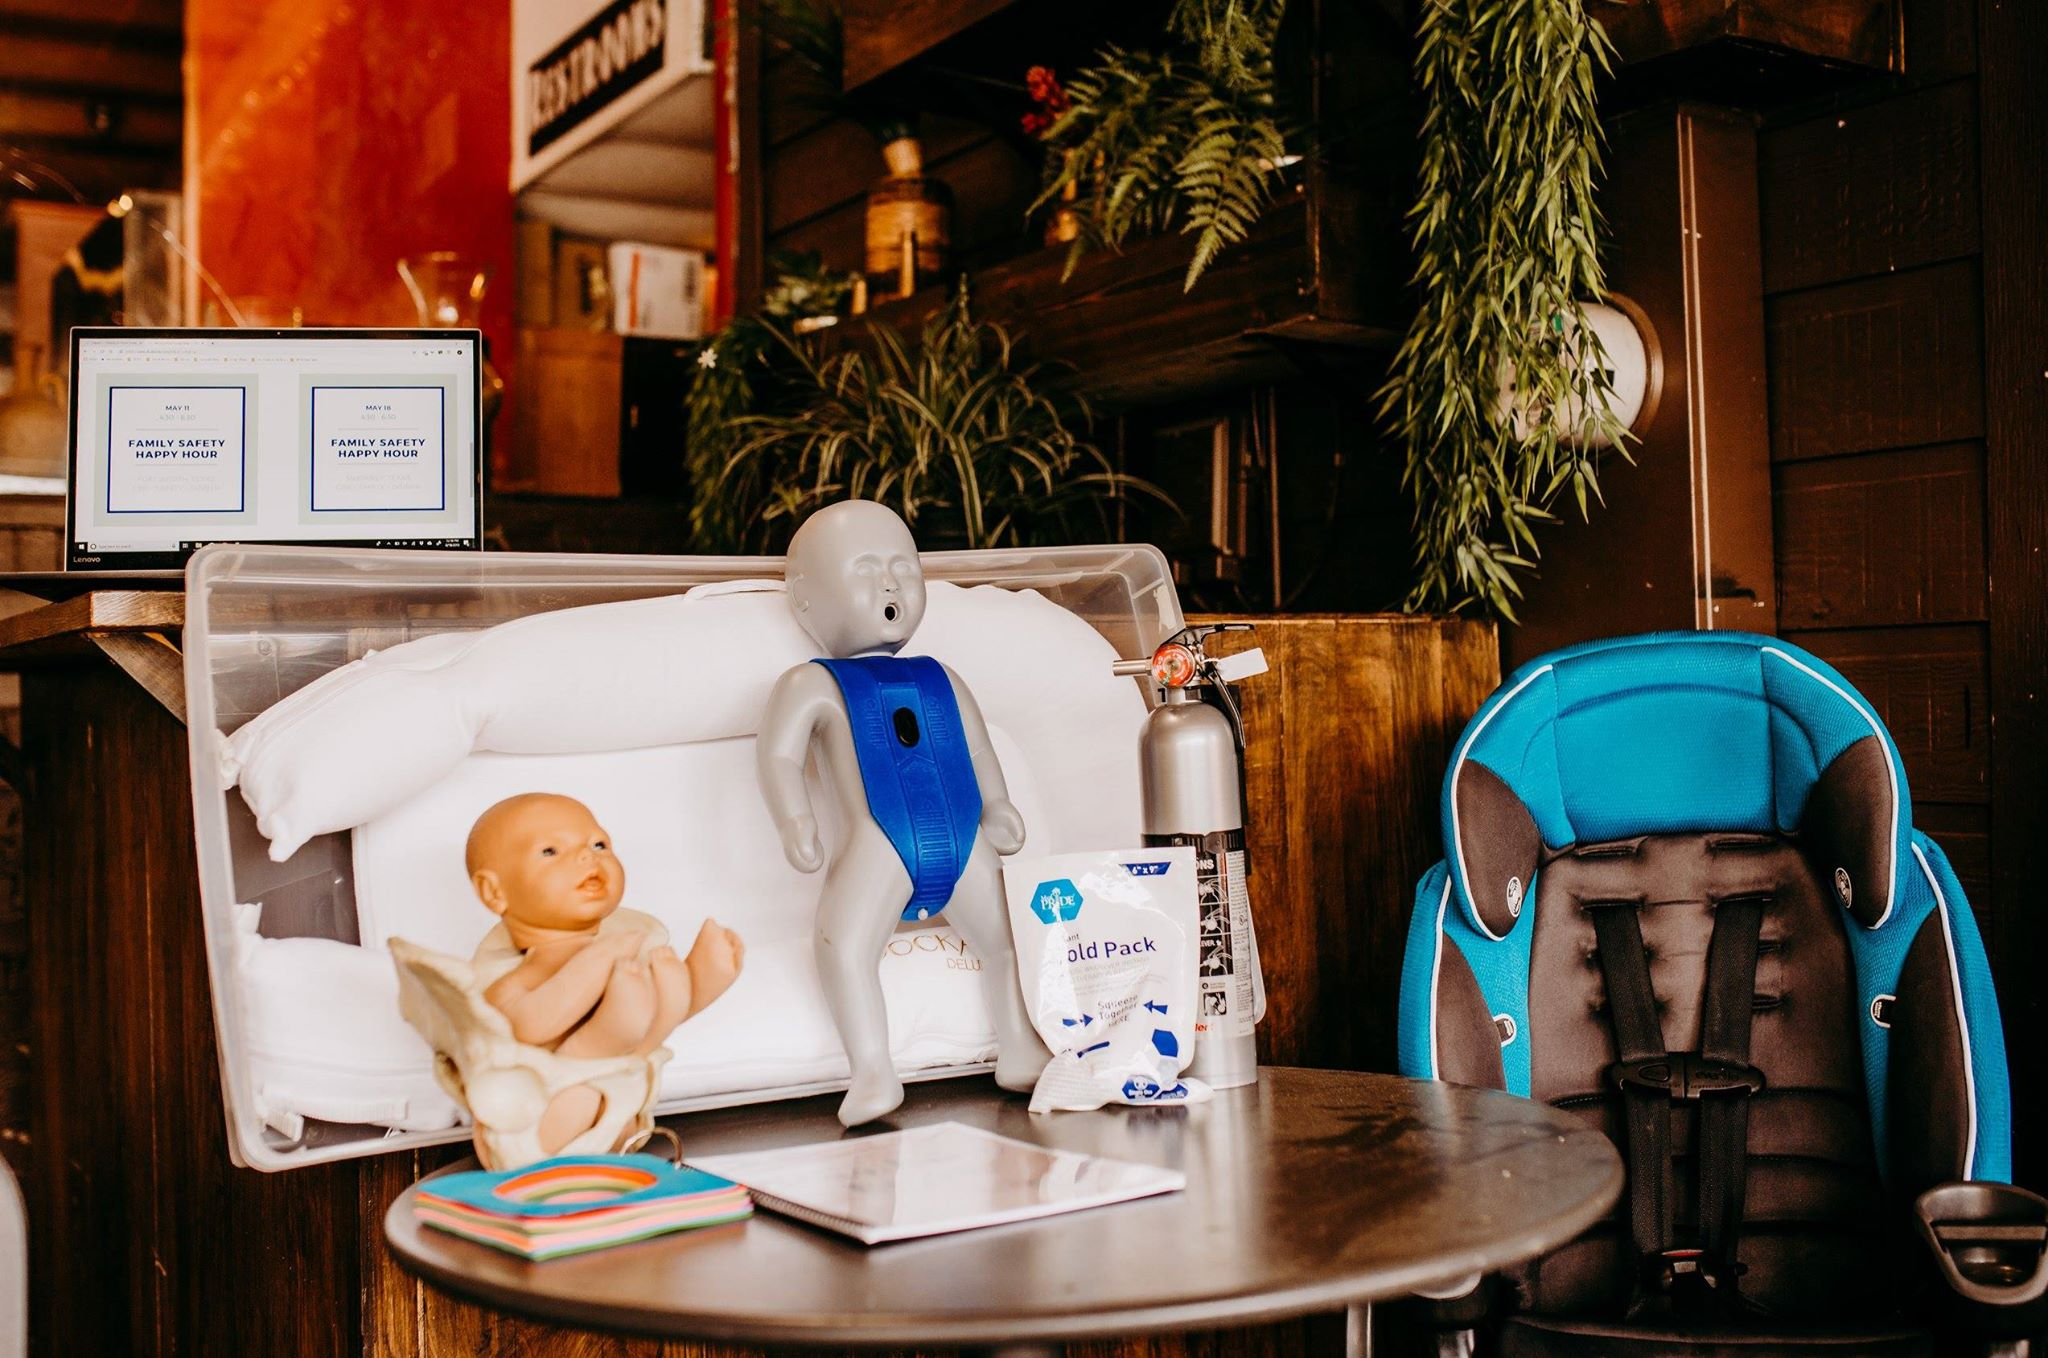 Infant CPR + Car Seat Tips + Baby Proofing + Infant Safety   UPCOMING FORT WORTH DATES    AUG 10 - SEPT 14 - OCT. 12